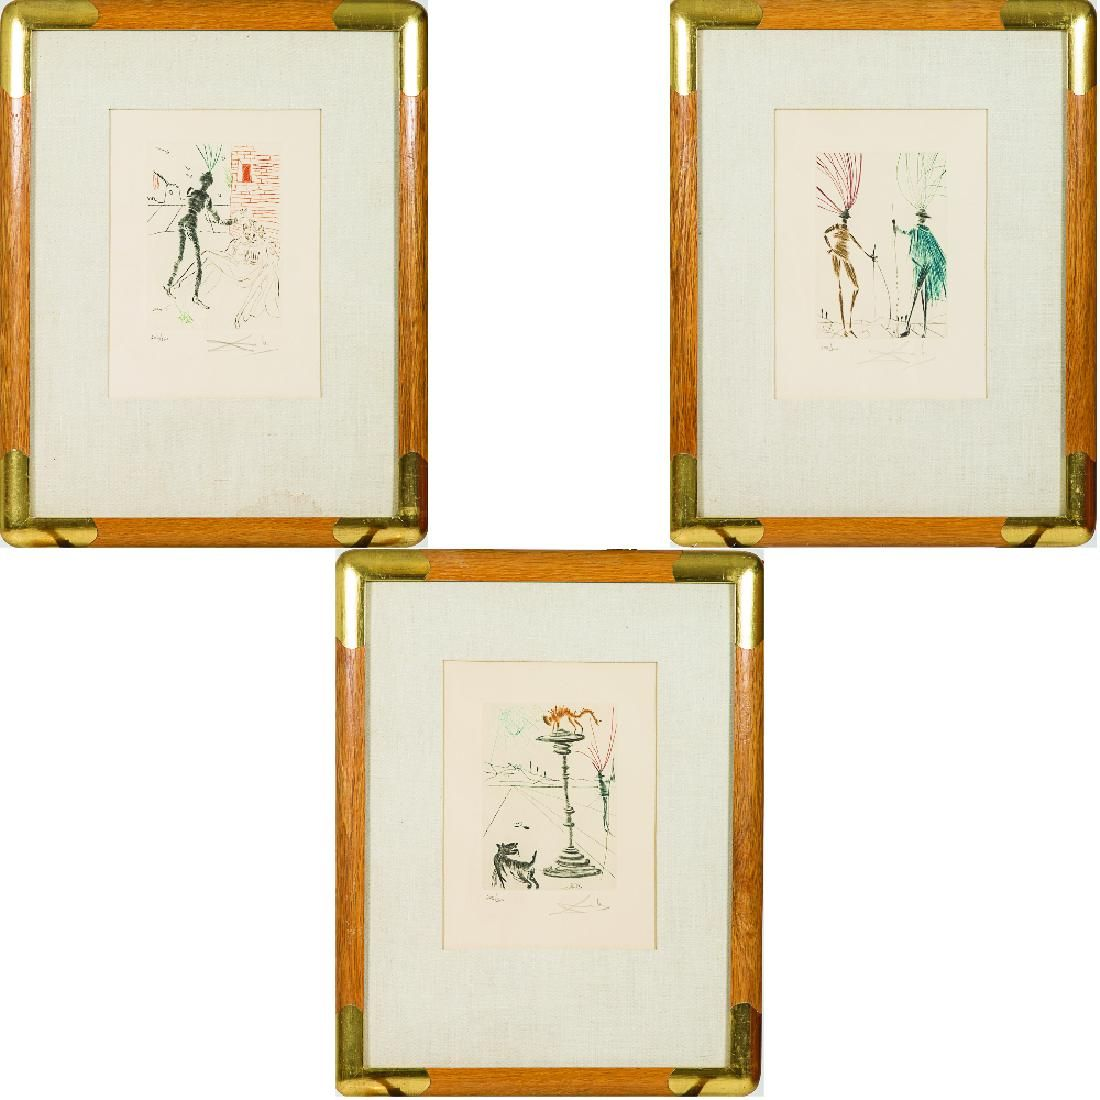 Salvador Dali (1904-1989) Three Works from the